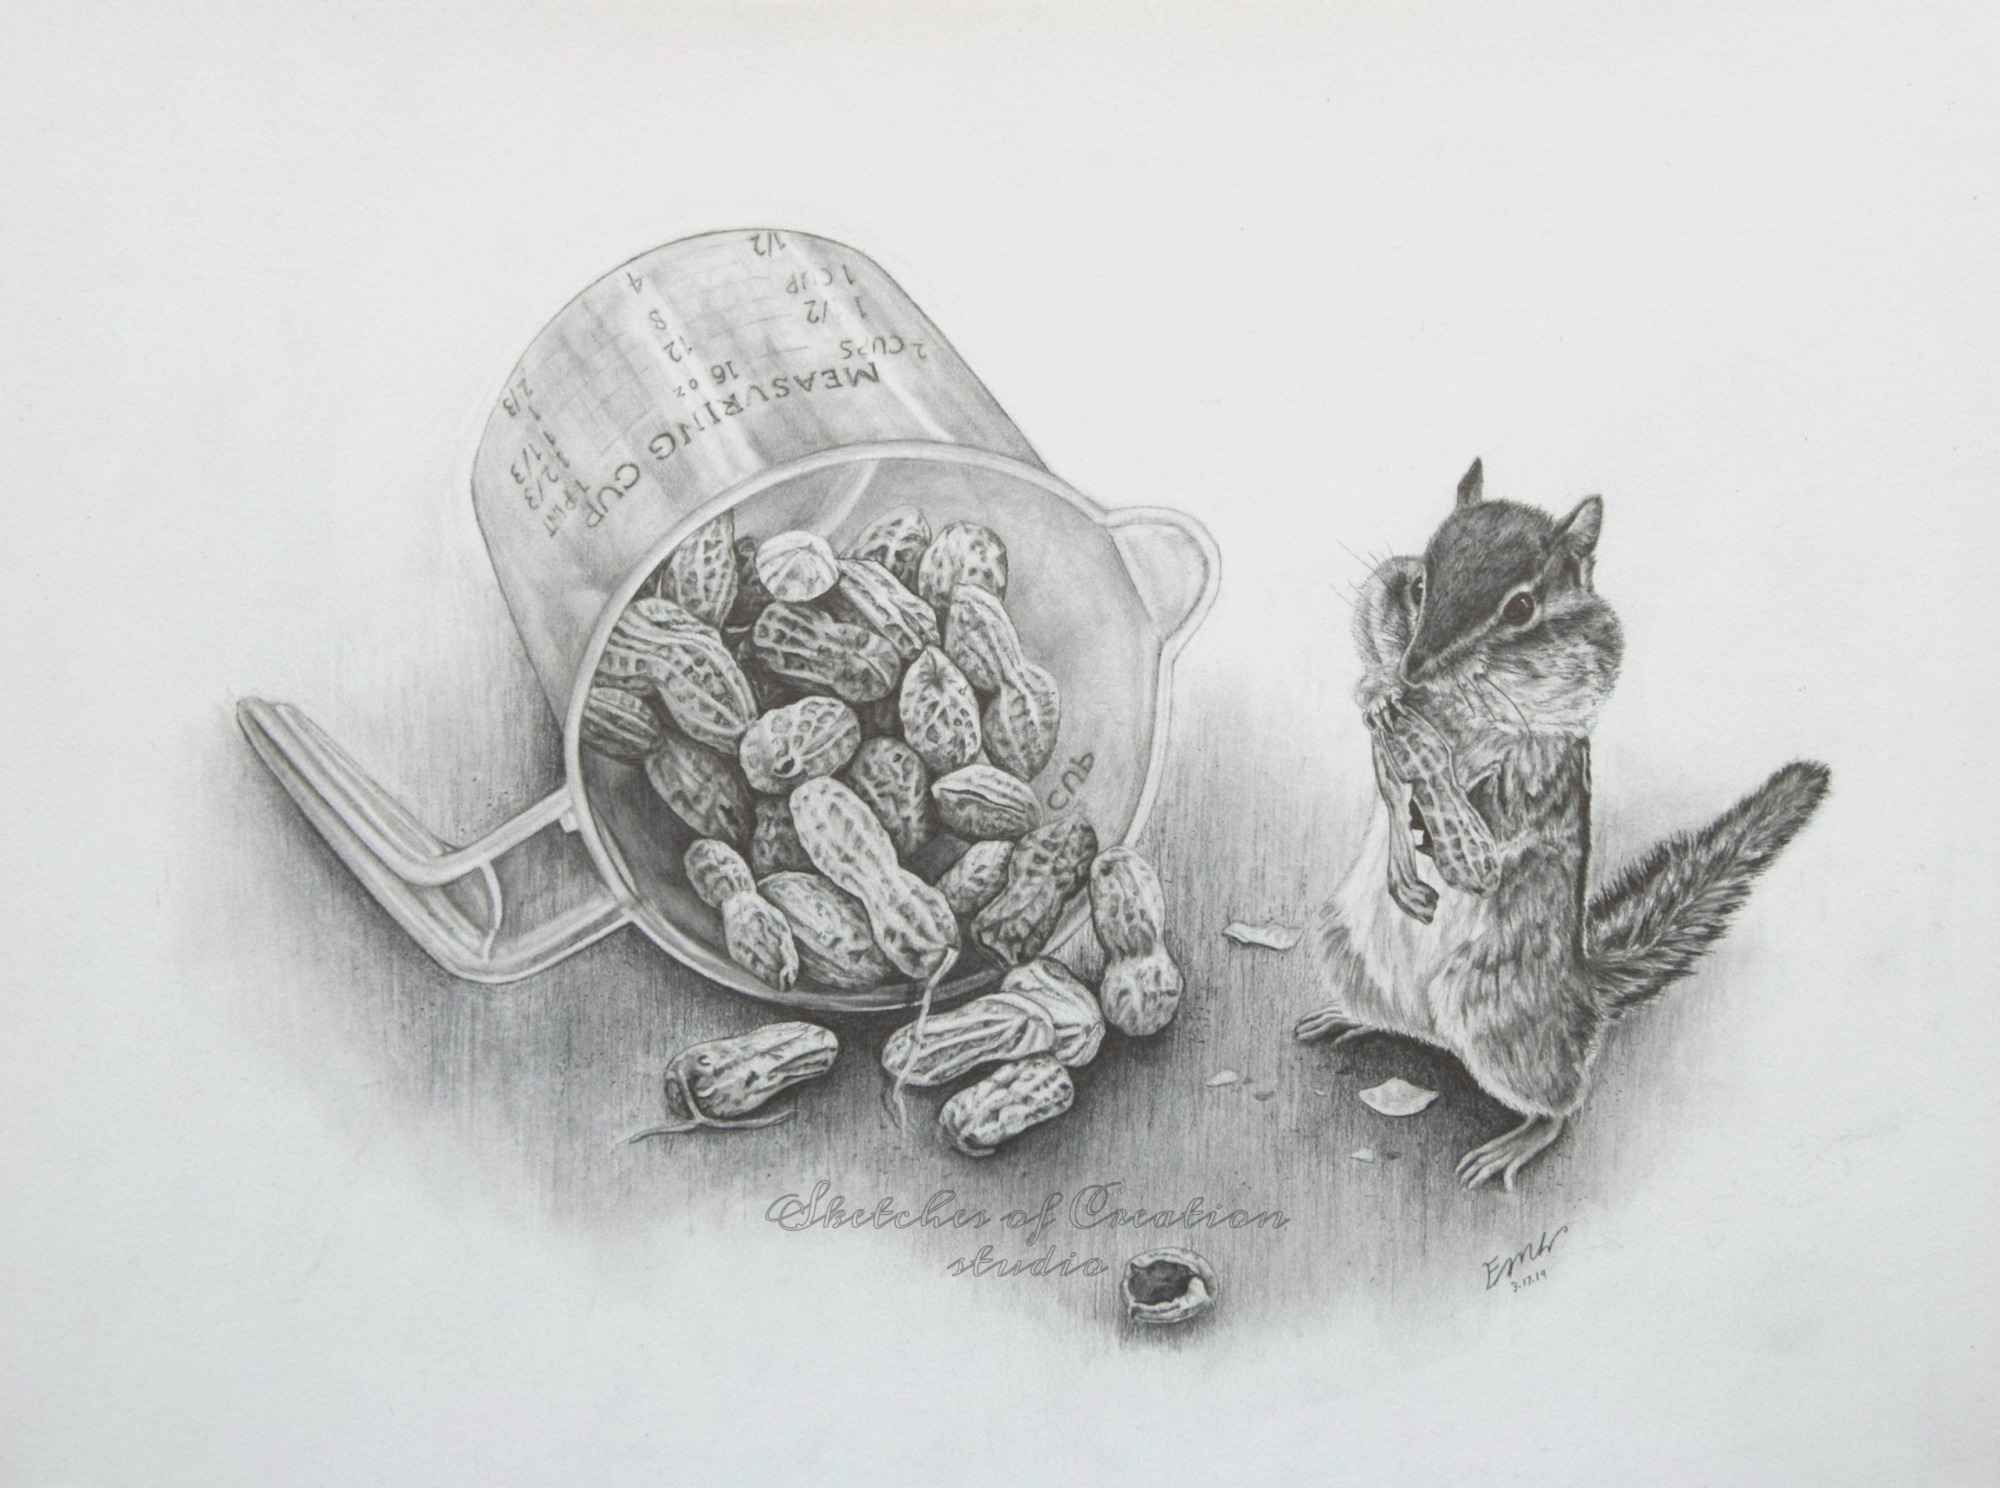 'Mischievous' a drawing of a chipmunk collecting peanuts. 9x12 inches. Completed March 2019